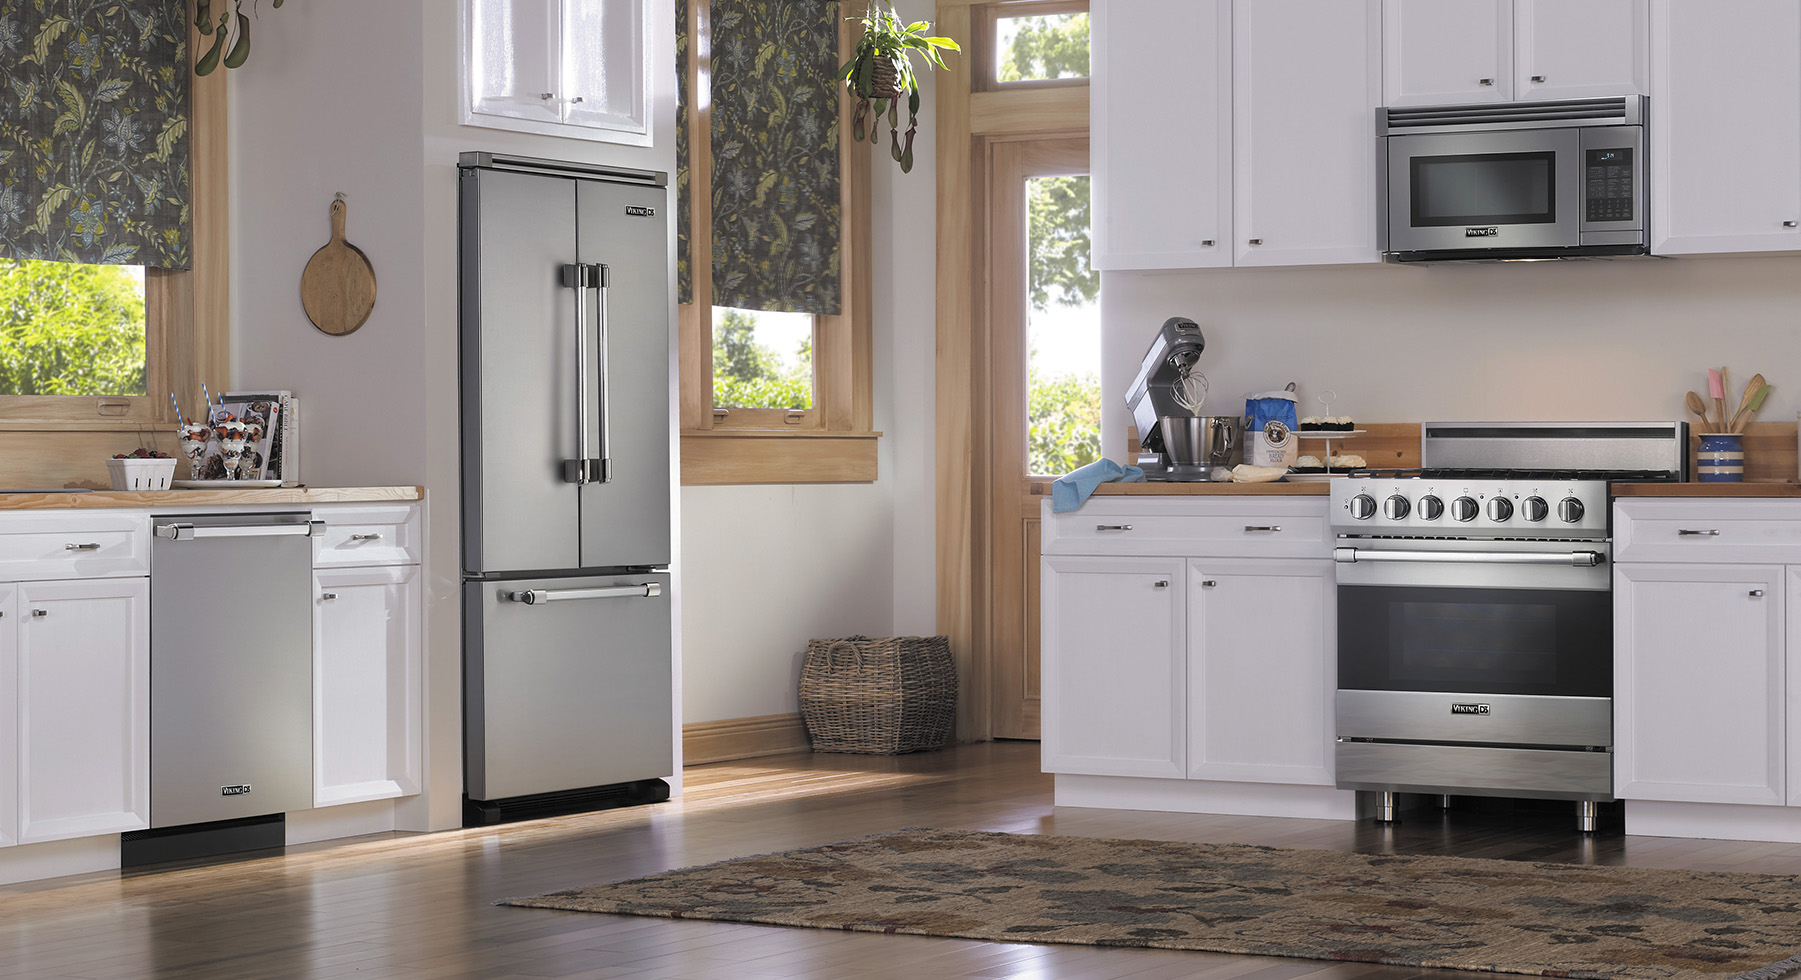 Viking web 30 appliance financing appliance service in viking kitchens rubansaba